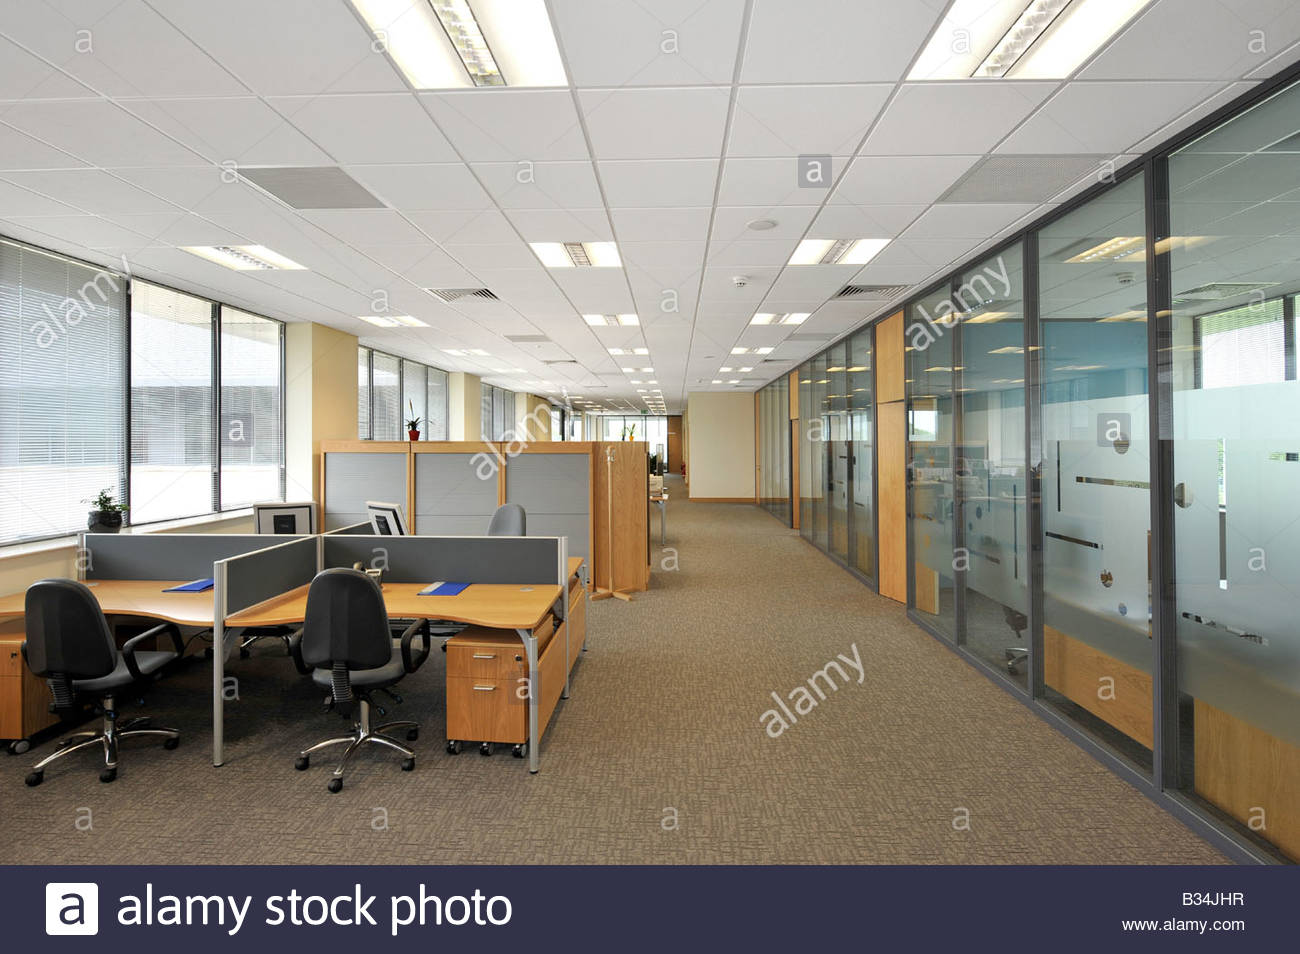 Modern open plan office space stock photo royalty free for Open space office